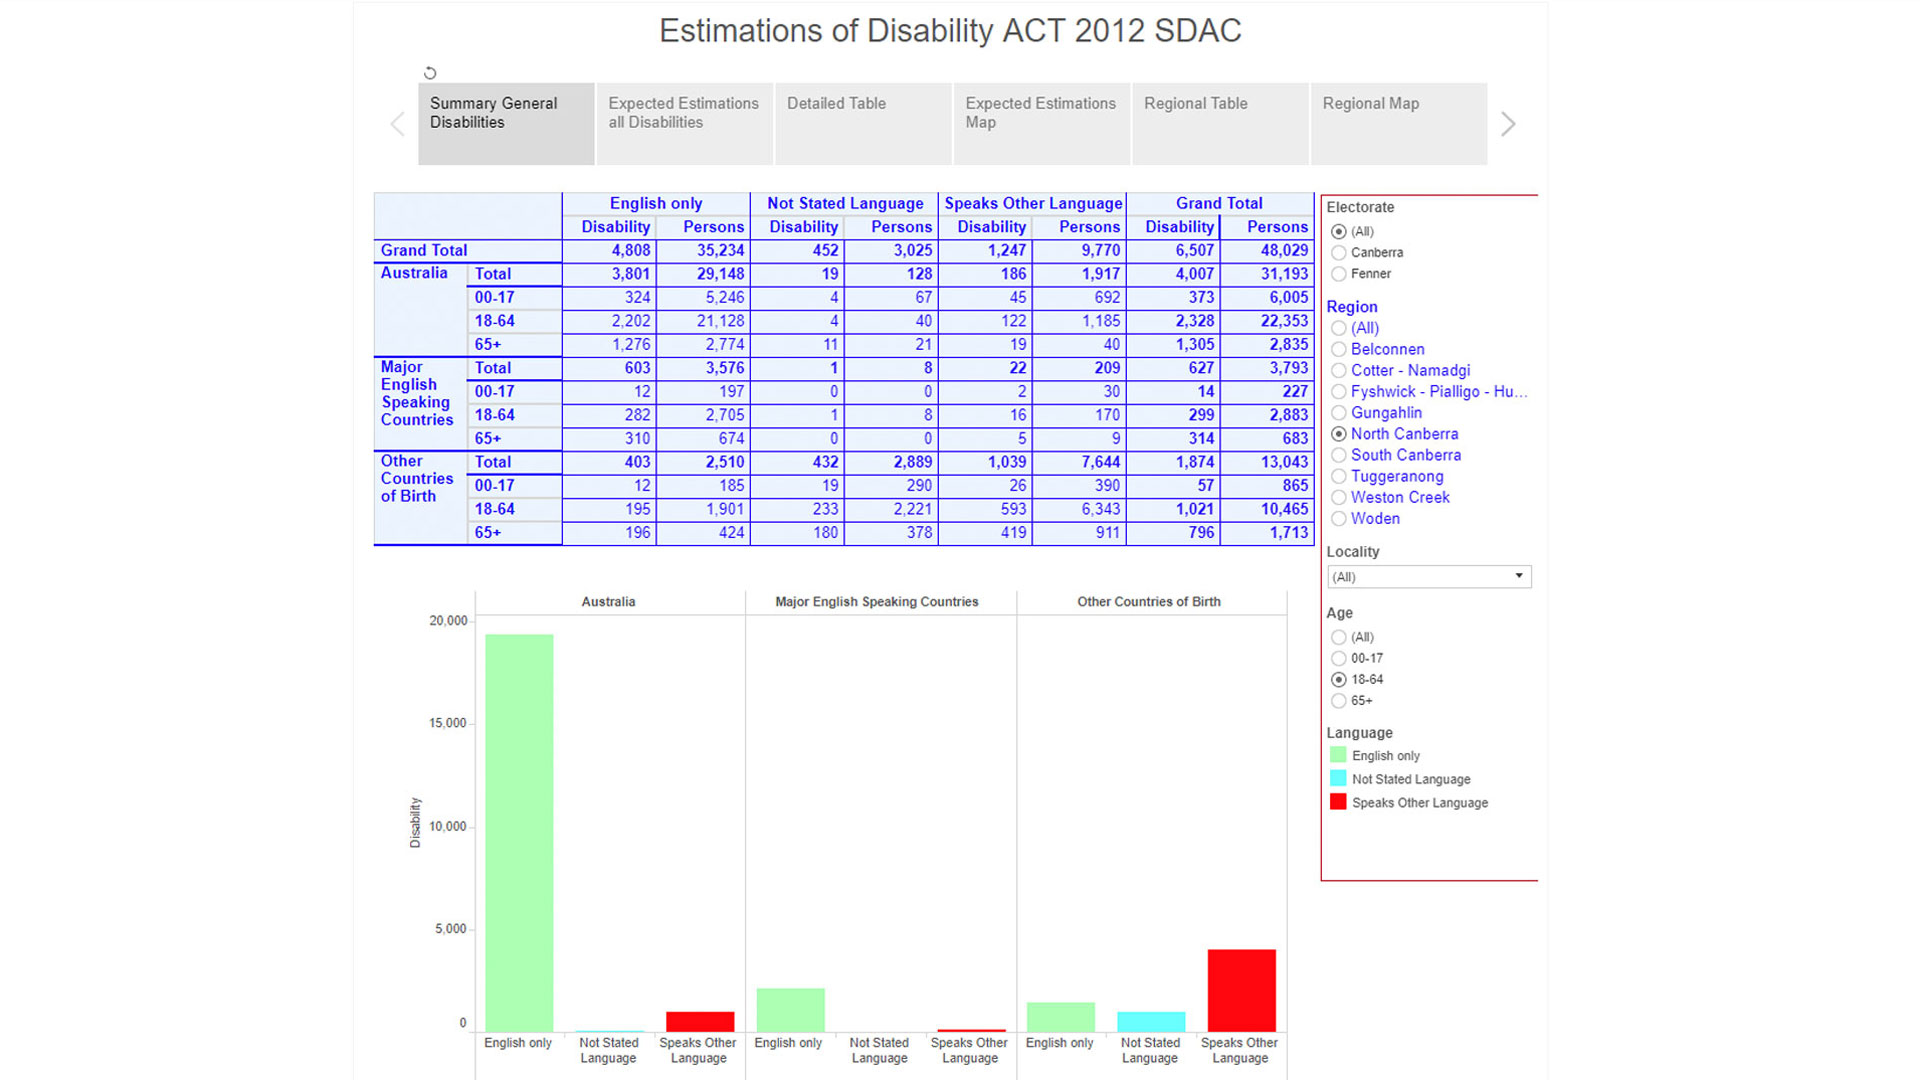 Estimations of Disability ACT 2012 SDAC - NEDA Data Example